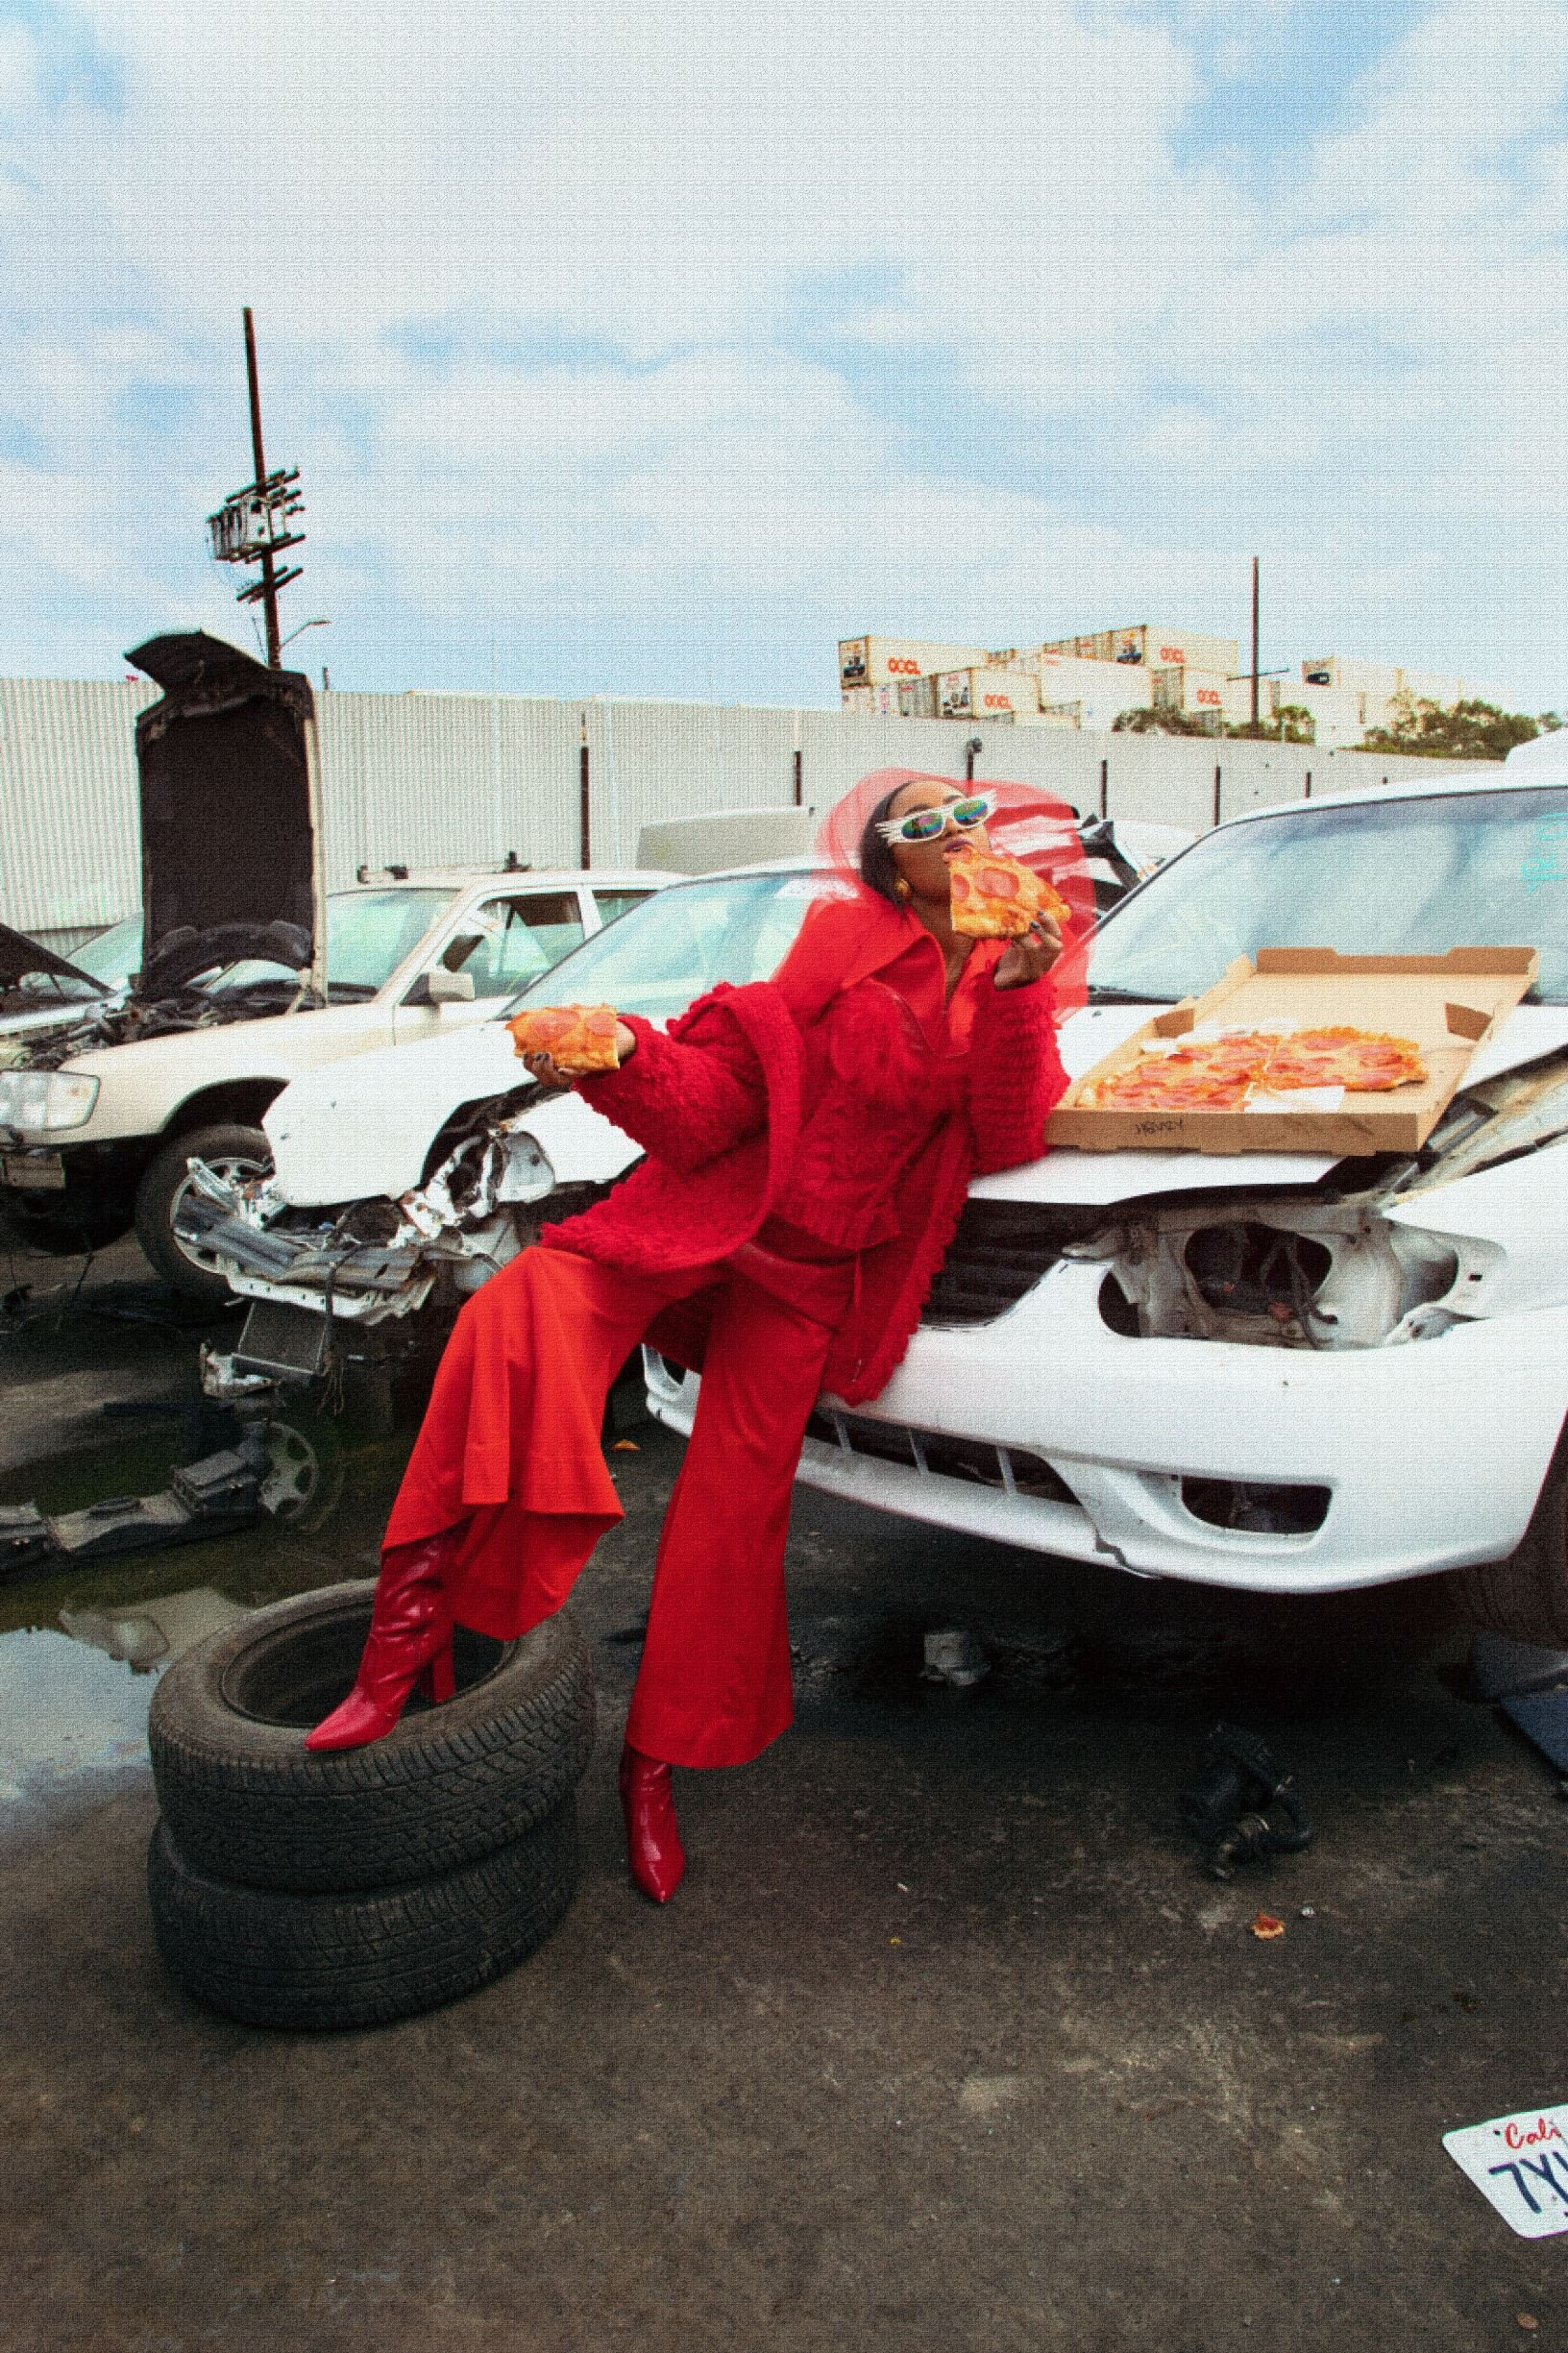 A model proves pizza and cars can be high fashion.